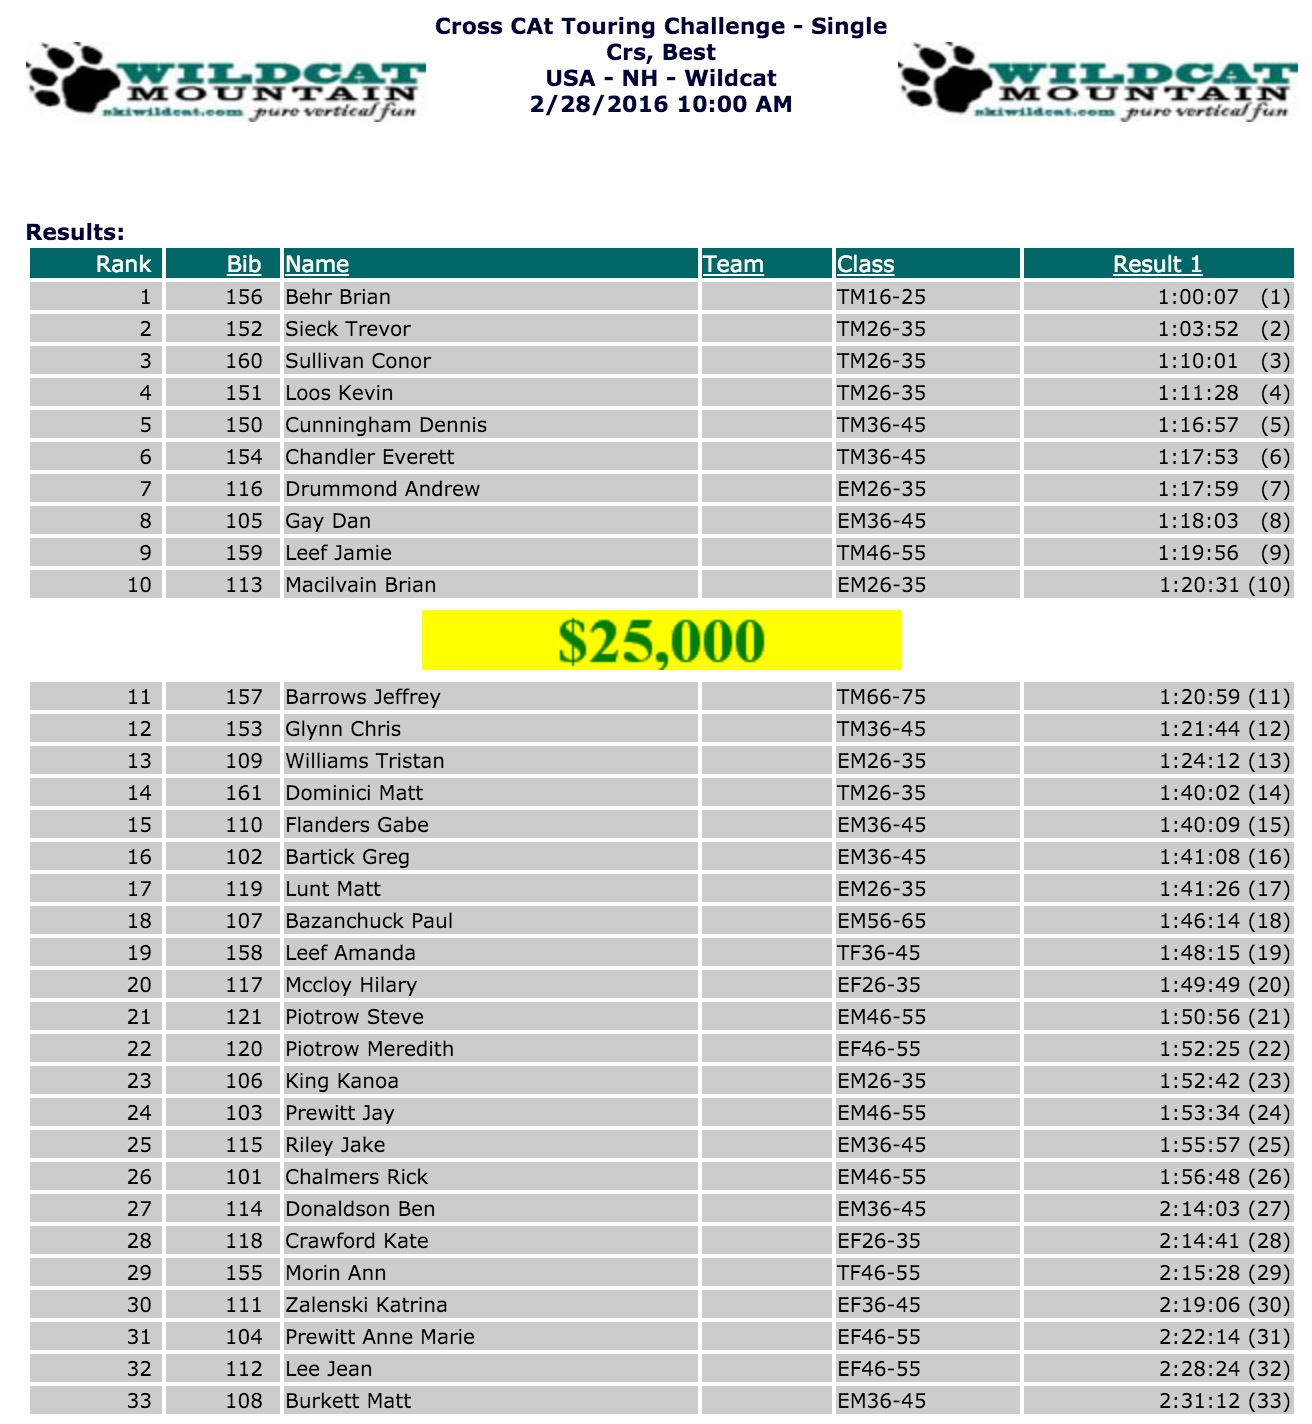 2016 Cross Cat Touring Challenge Results.